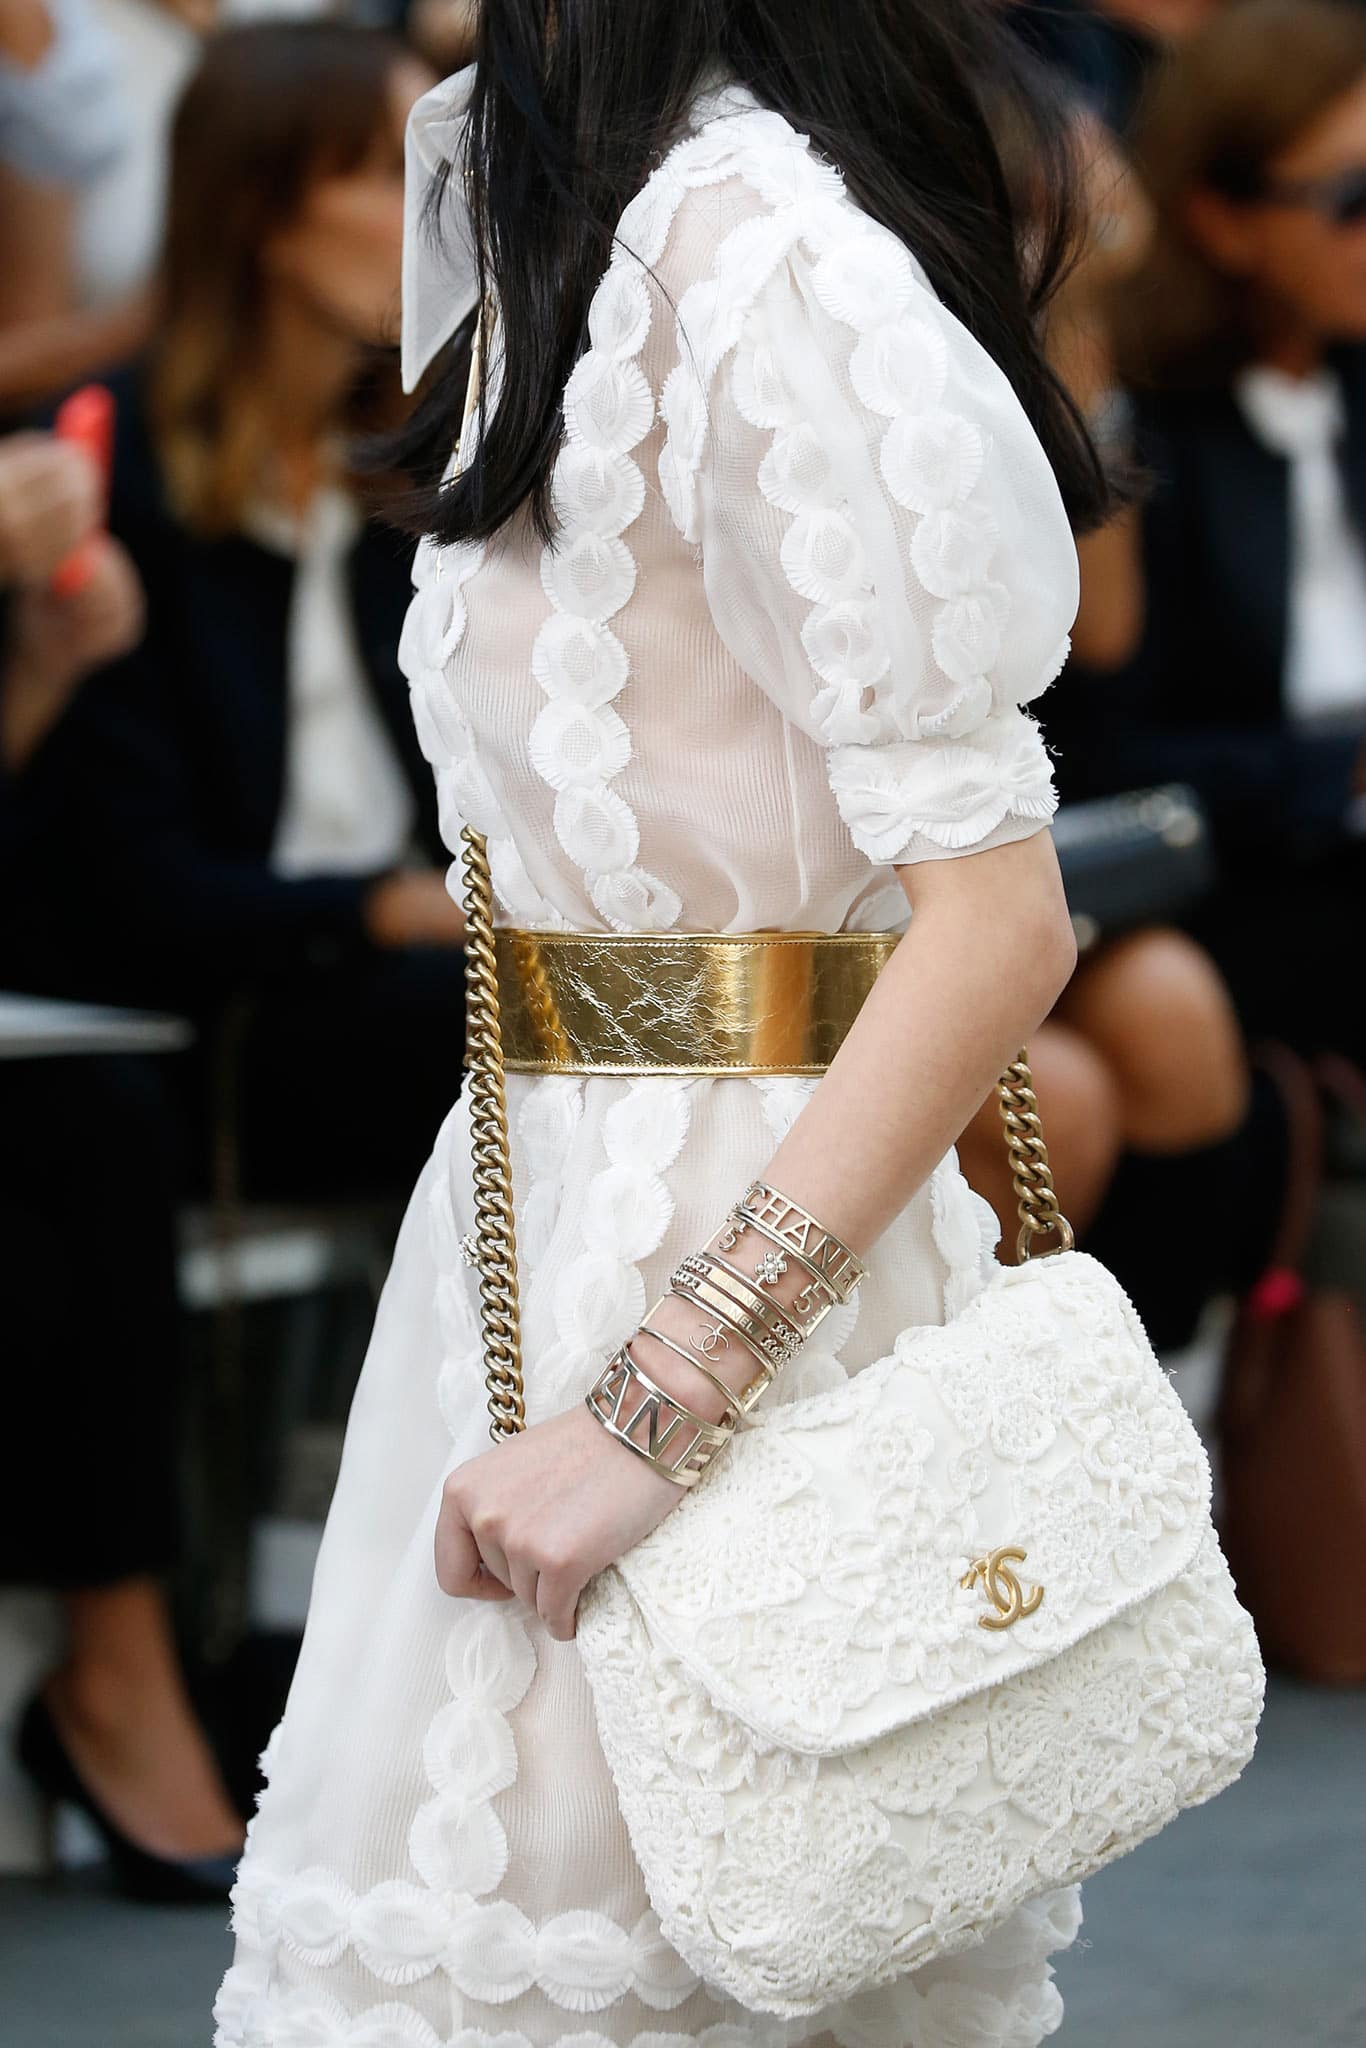 Chanel Spring / Summer 2015 Runway Bag Collection